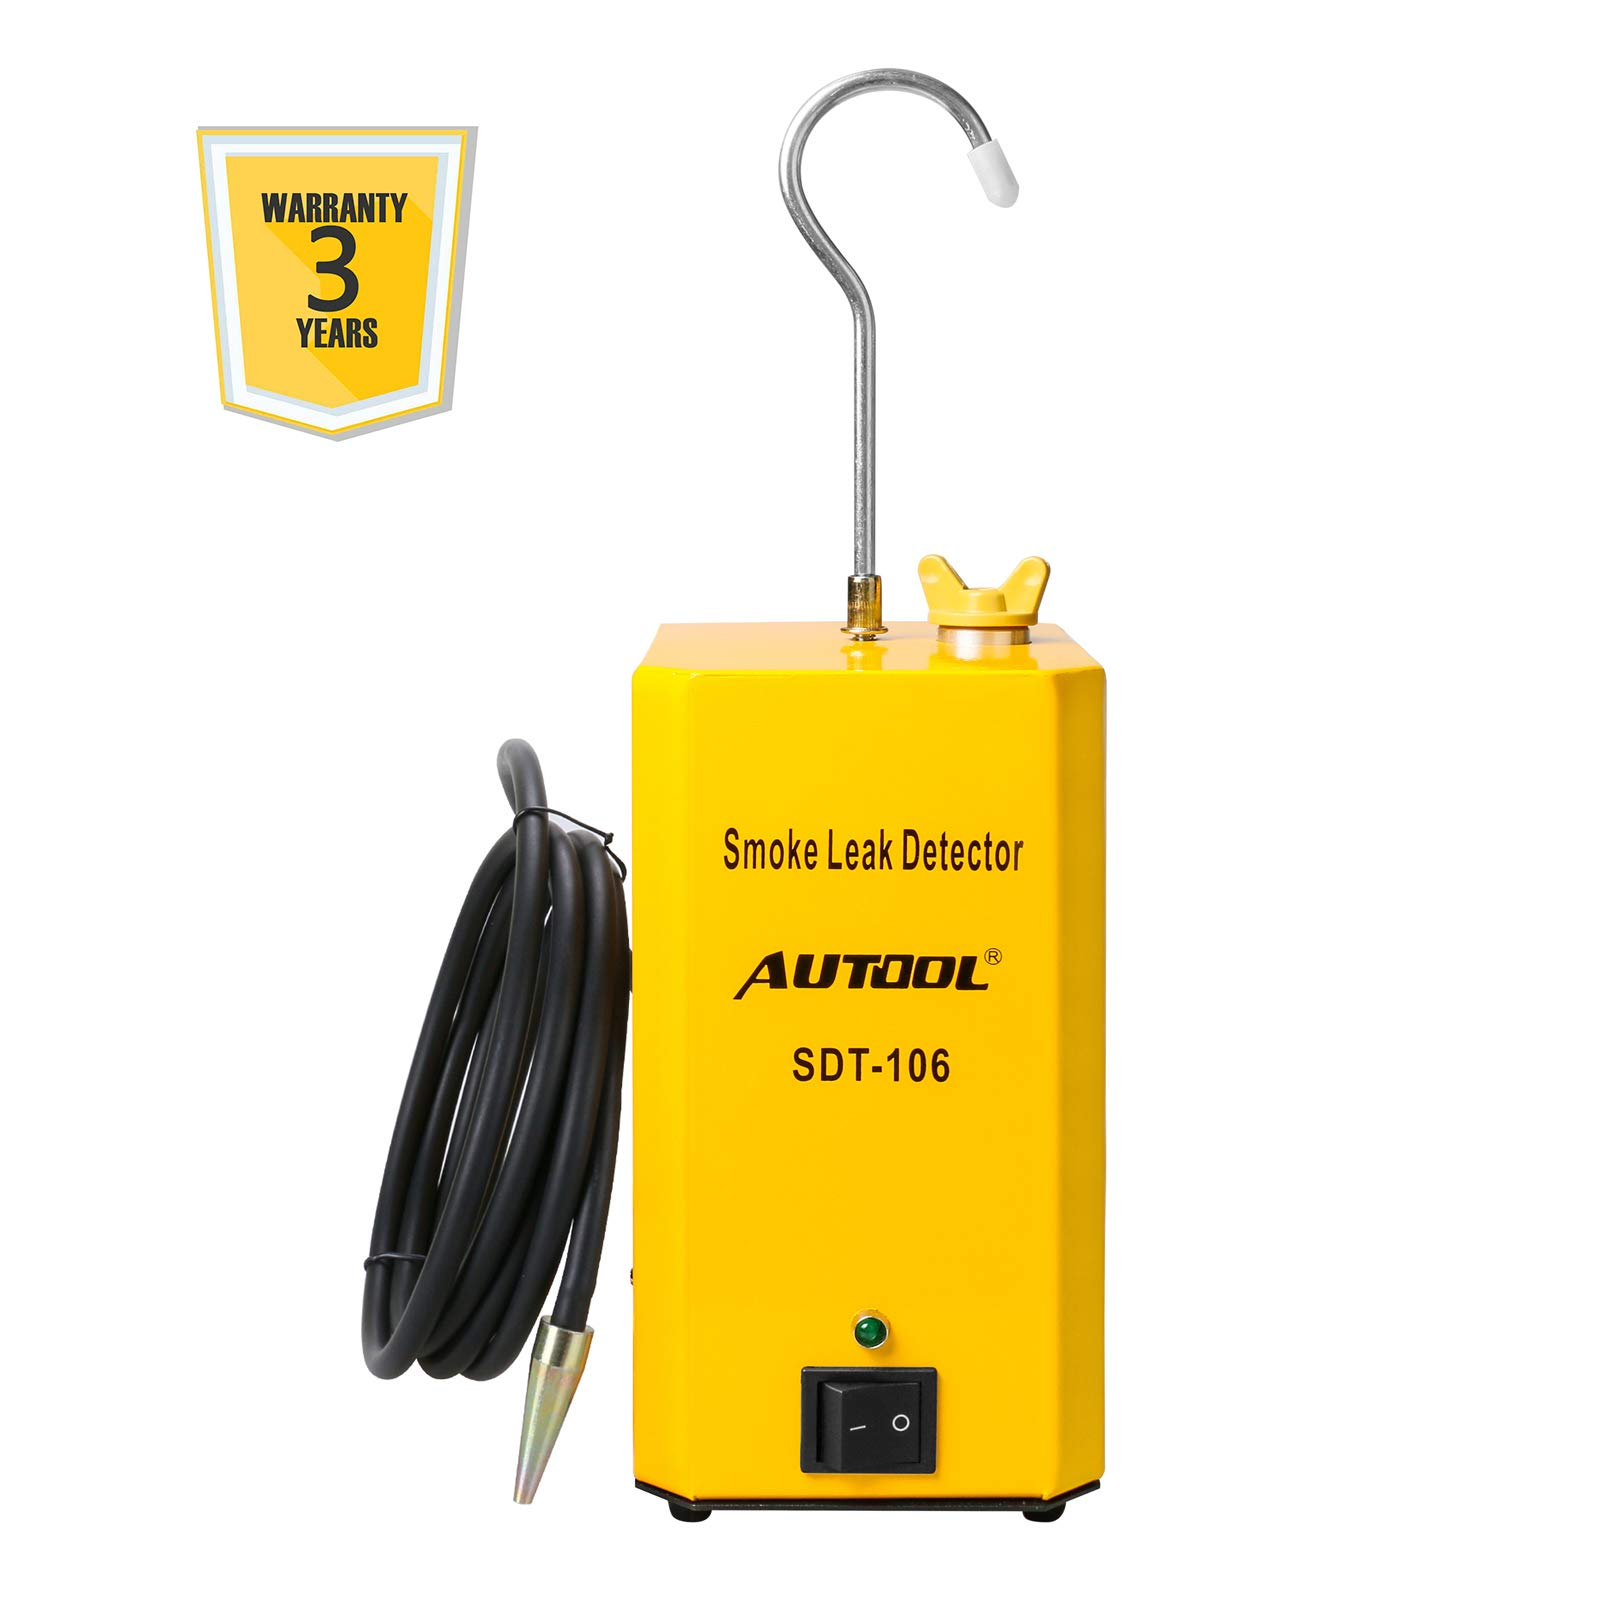 AUTOOL SDT-106 Vehicle EVAP System Leak Testing Machine Leak Detector, 12V Automotive Fuel Pipe System Leak Tester with EVAP Adapters for All Cars Motorcycles - 3 Years Warranty